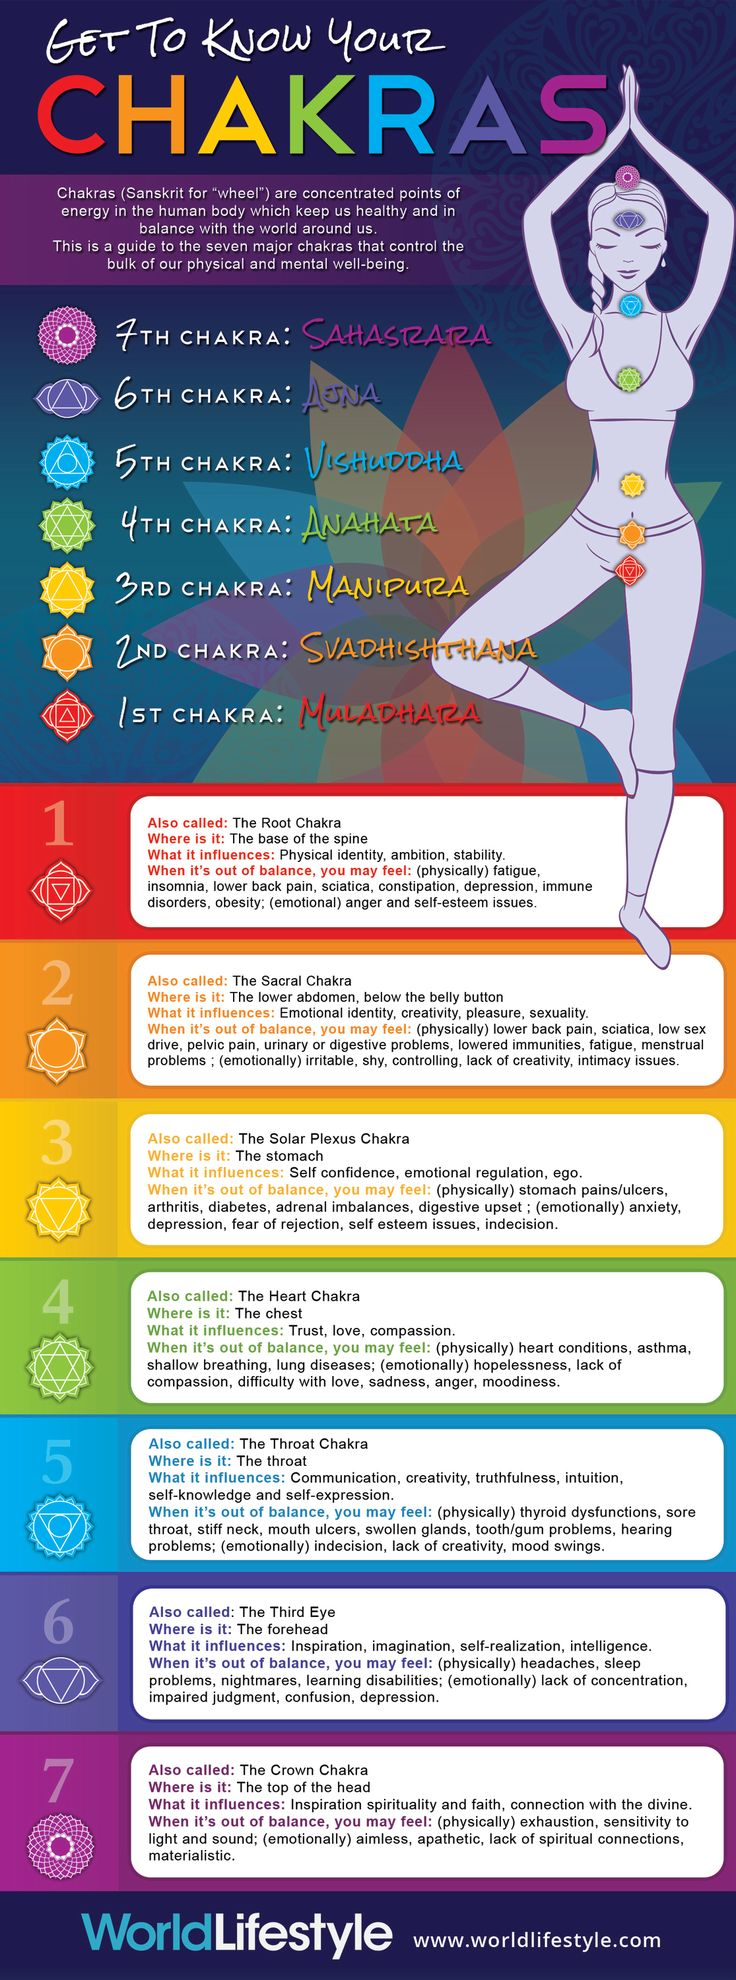 Understanding Your Chakras - repinned by http://www.tools-for-abundance.com/Reiki.html